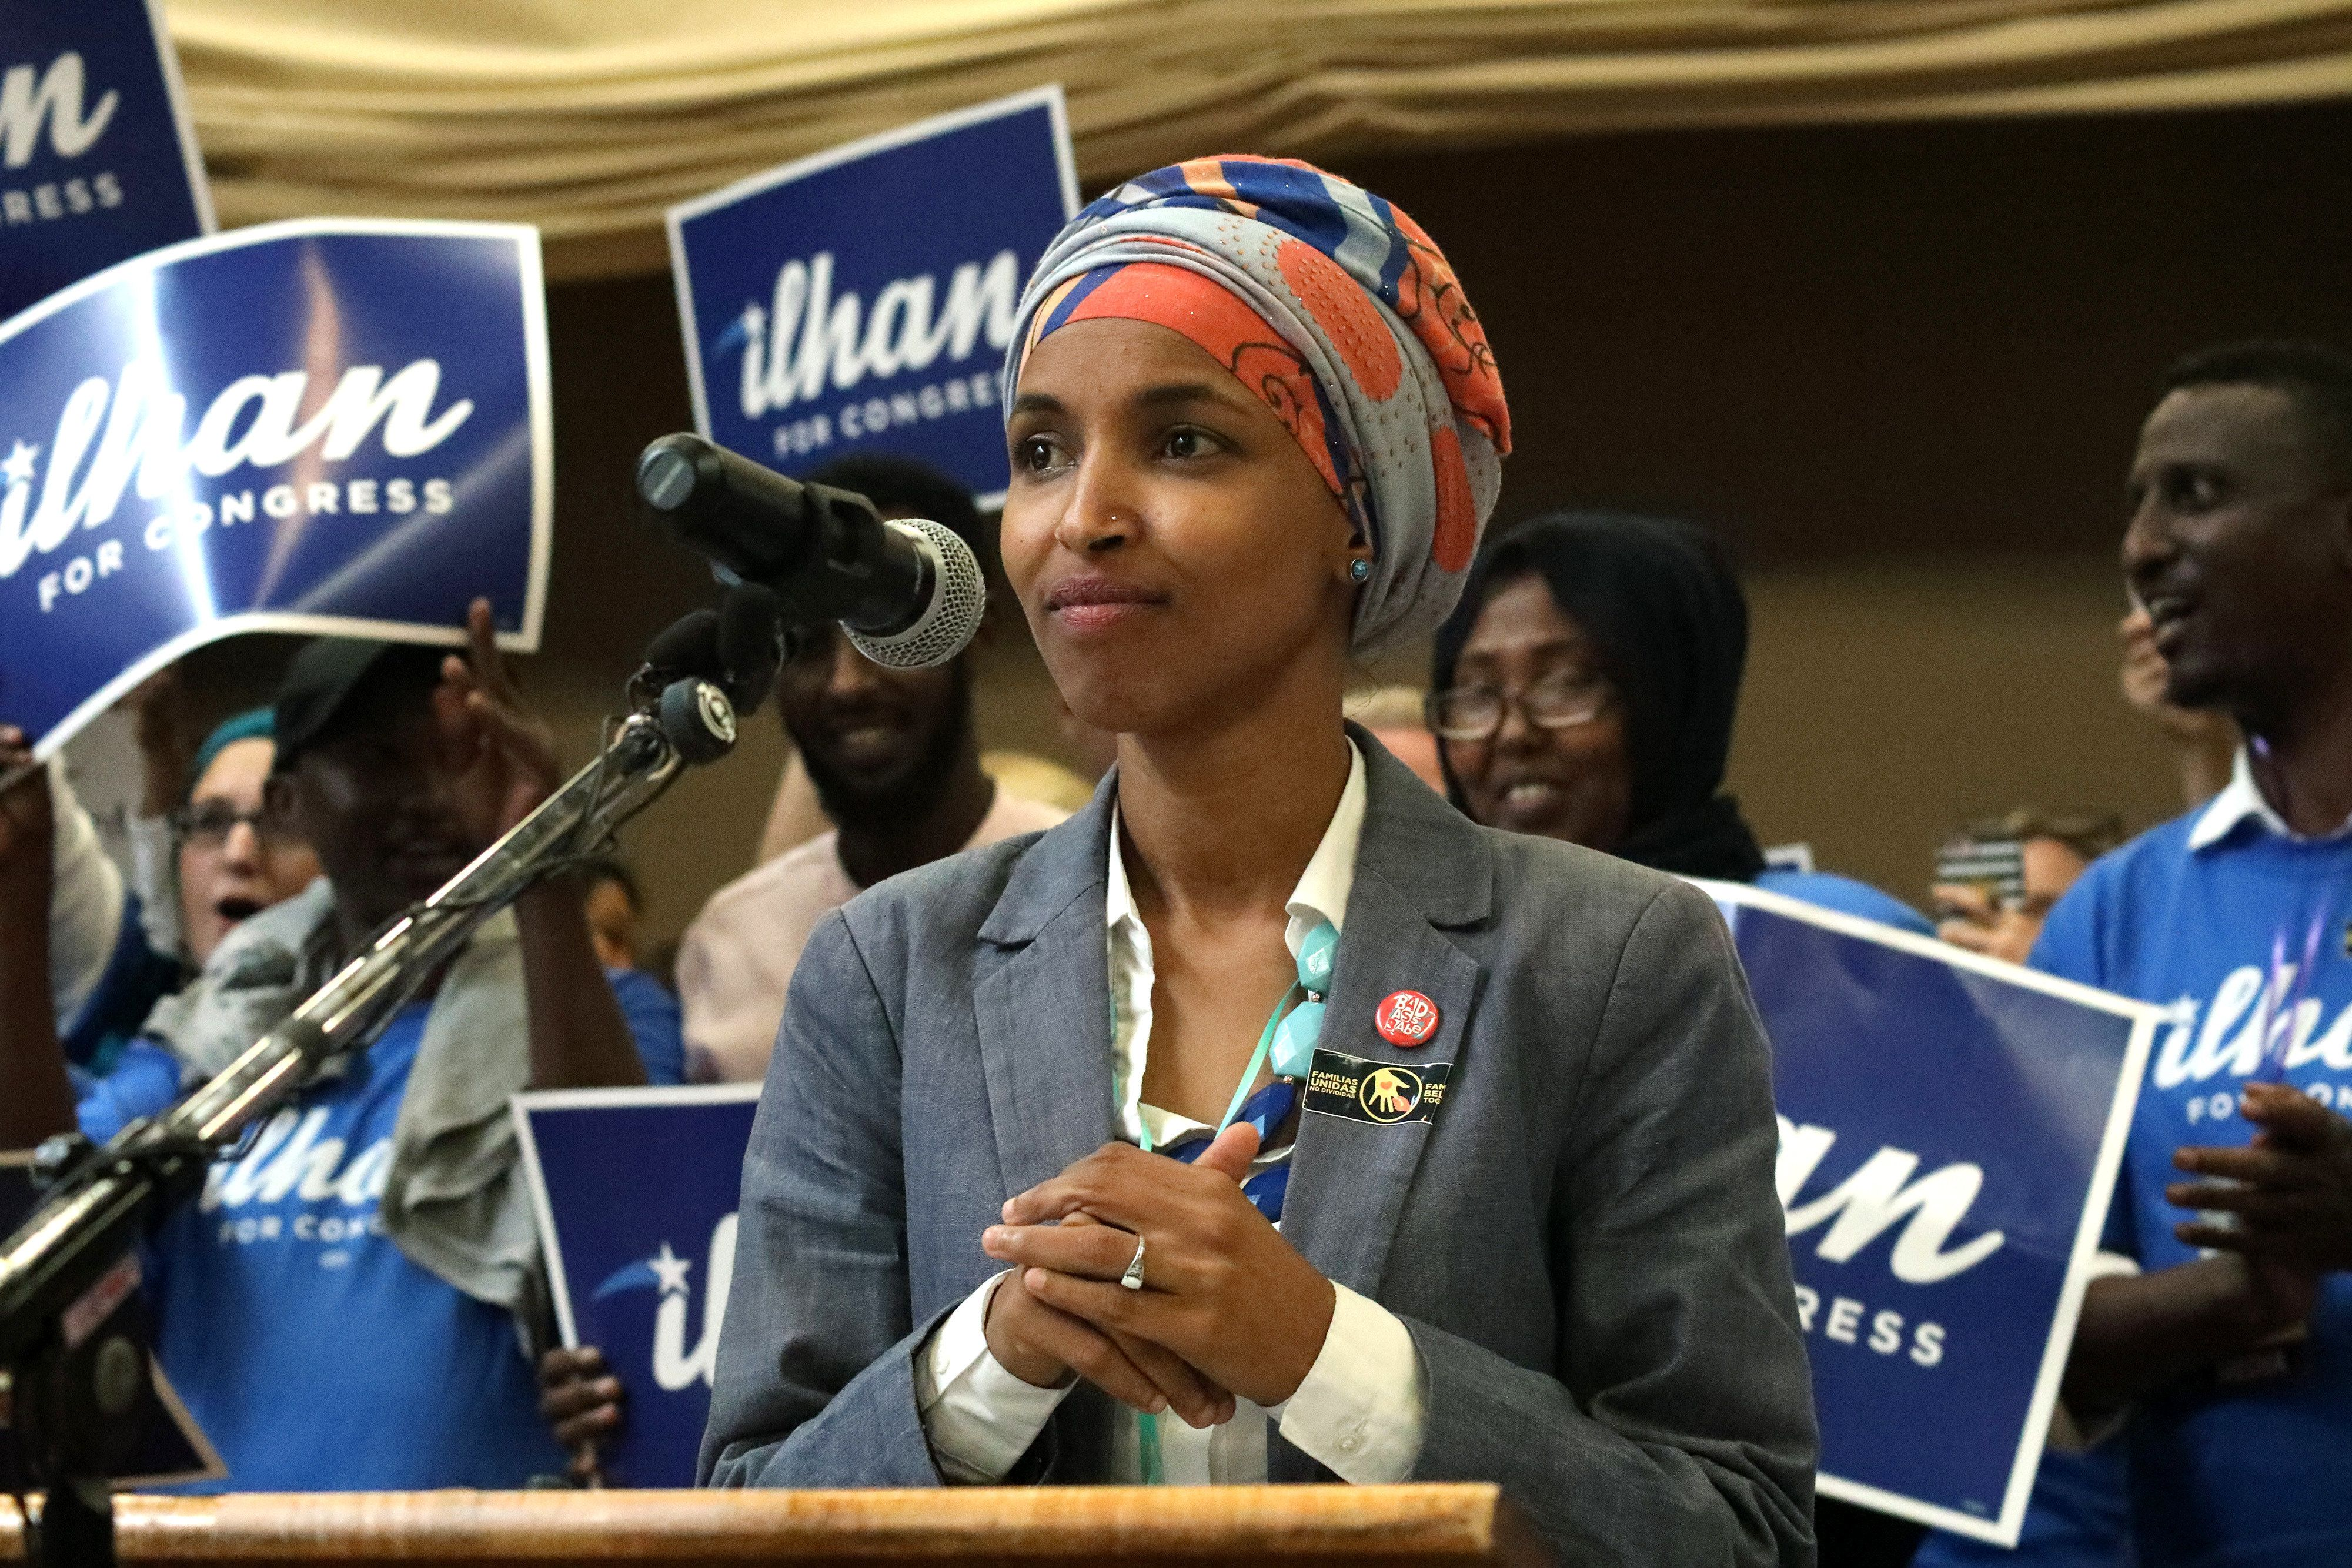 First Muslim woman elected to House of Representatives